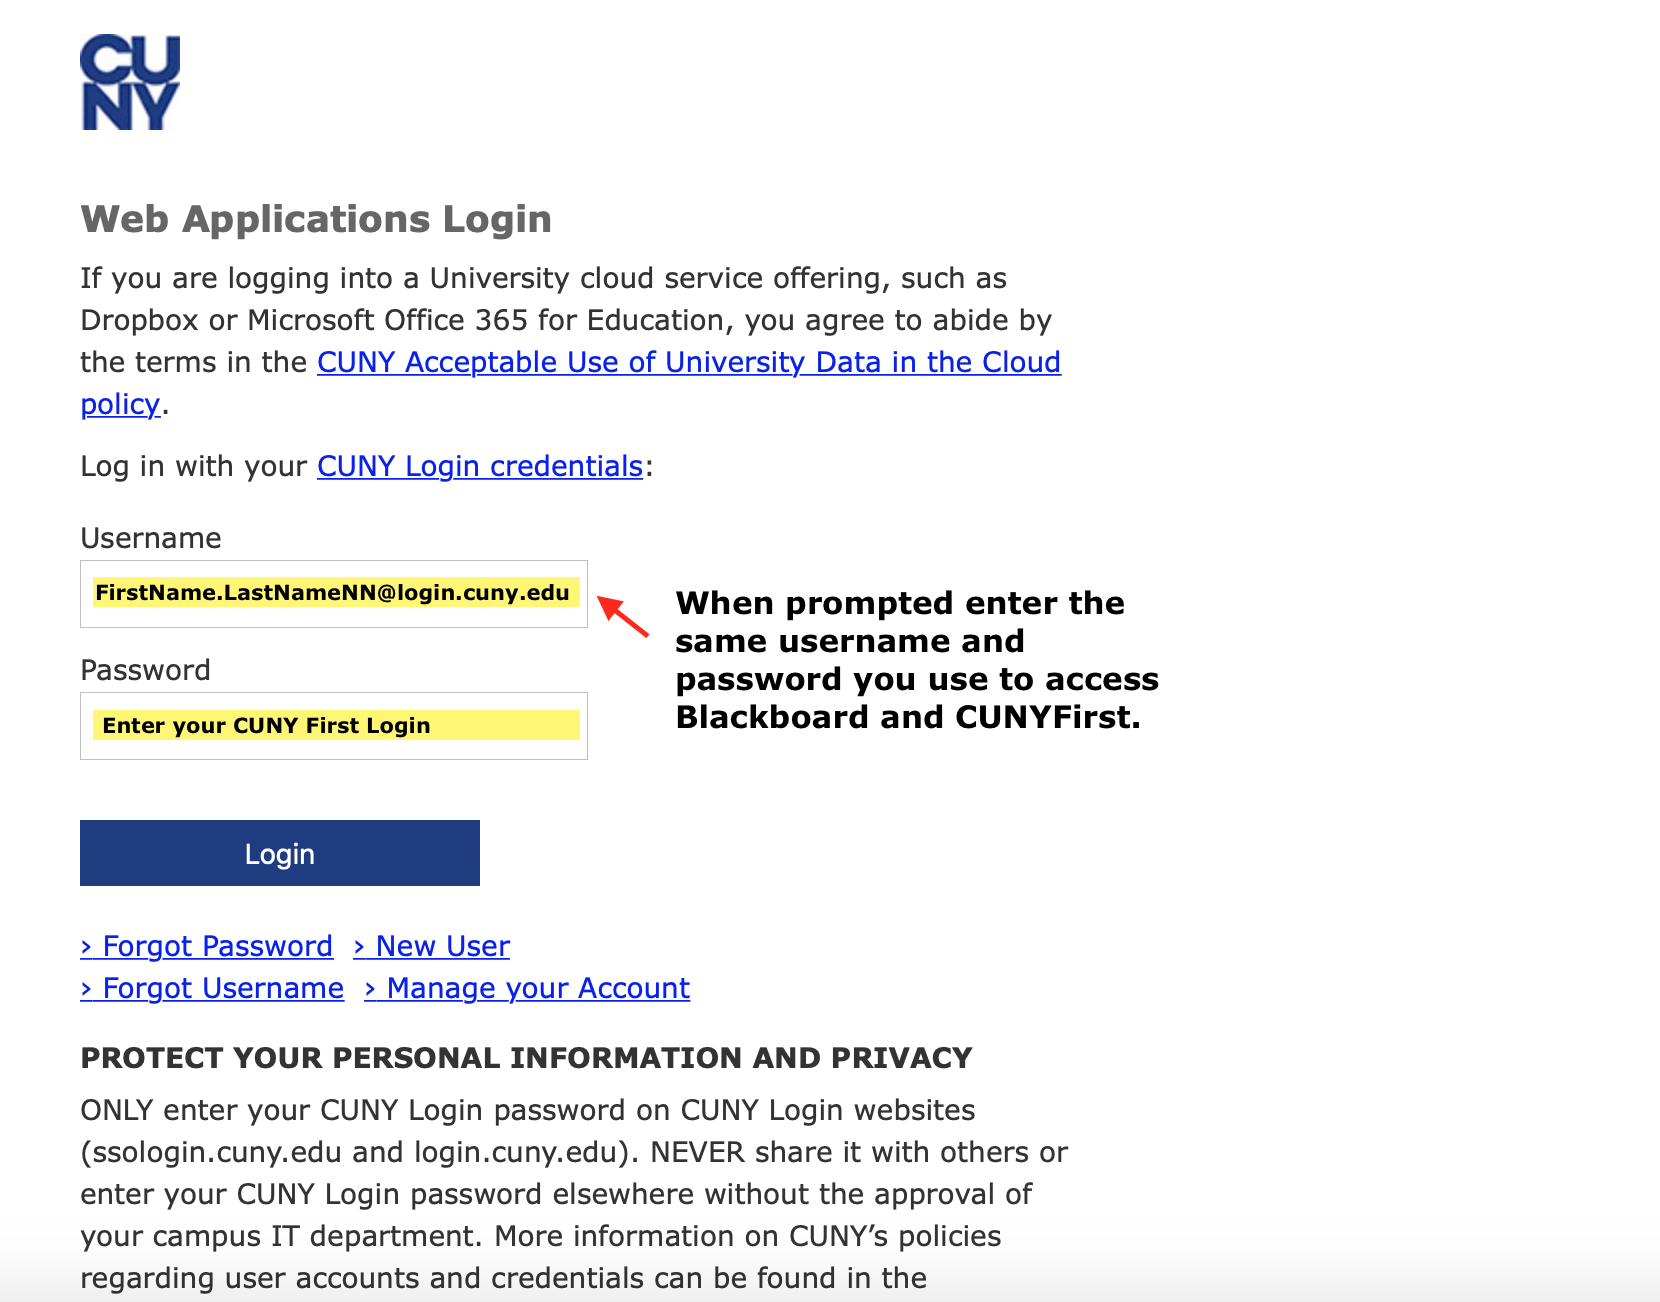 When prompted, enter the same username and password you use to access Blackboard and CUNYfirst.